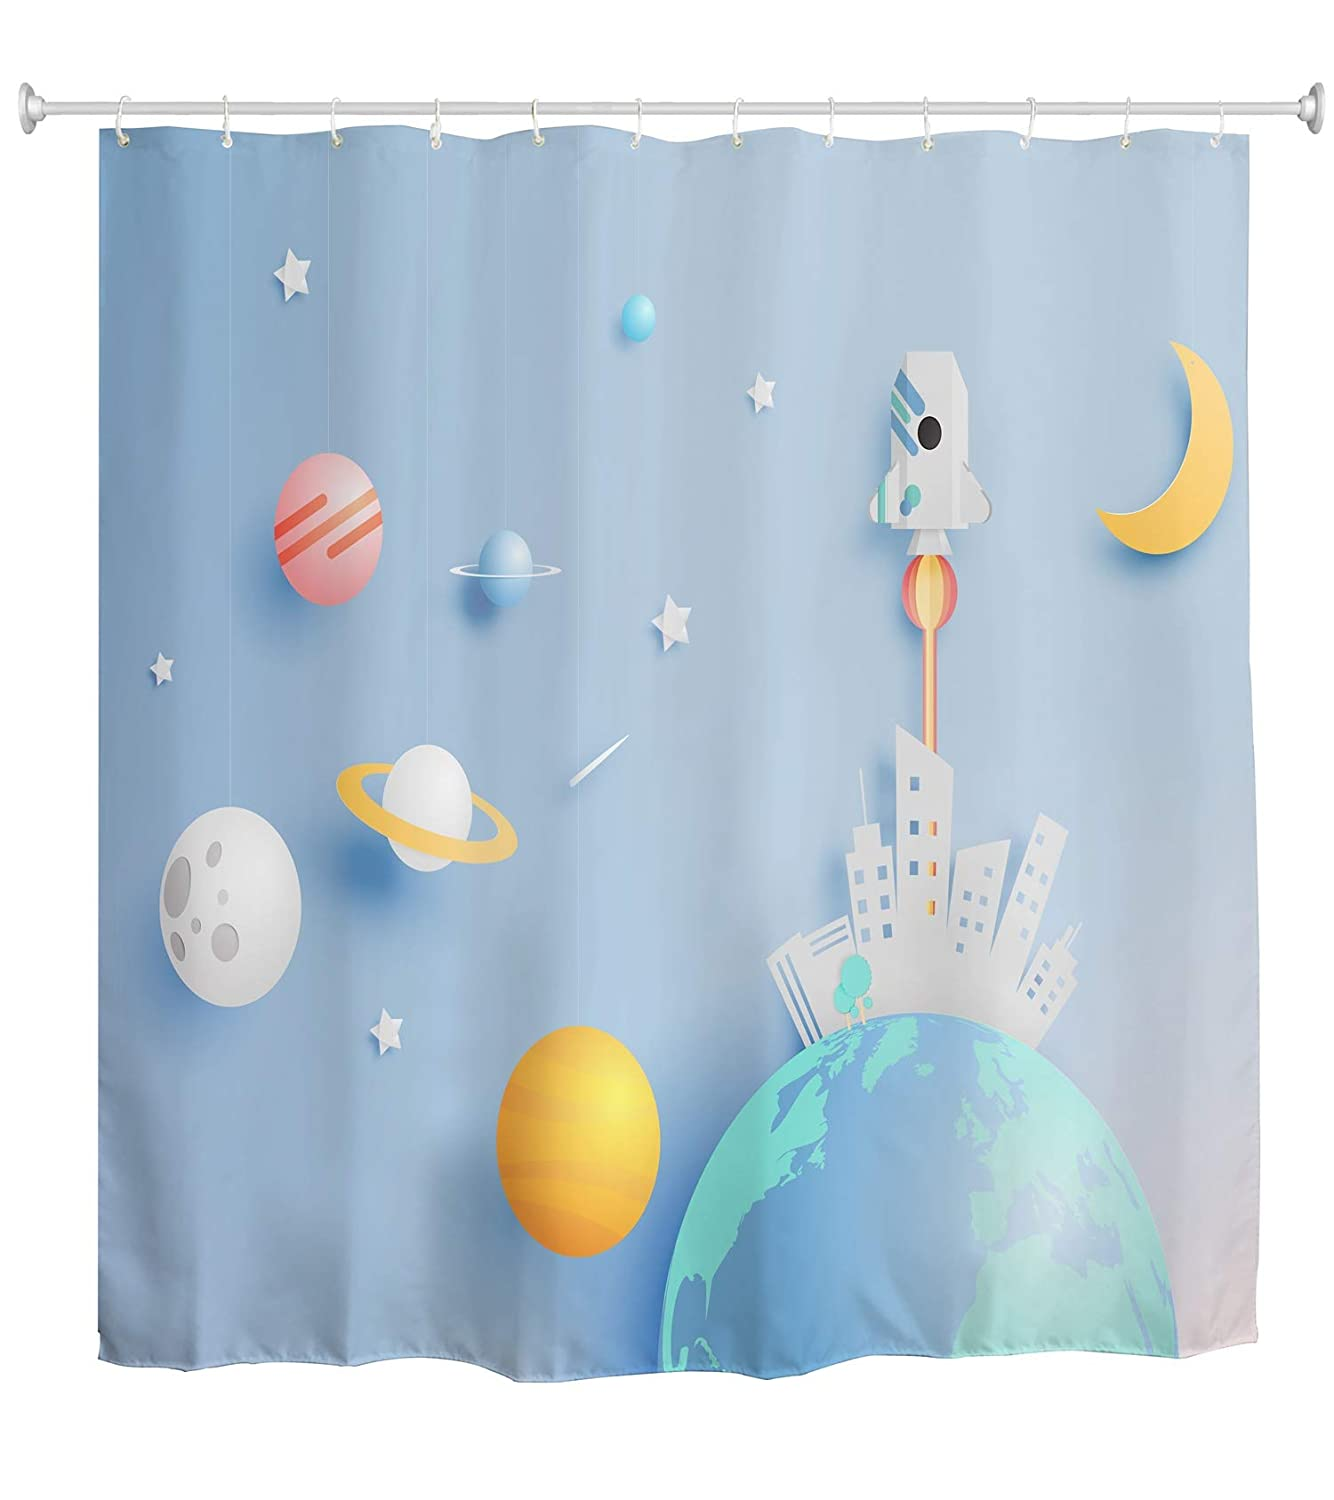 Ao Blare Universe Shower Curtain Space Earth Sun Paper Rocket And Solar System Art Blue Blackground Waterproof Polyester Fabric Set